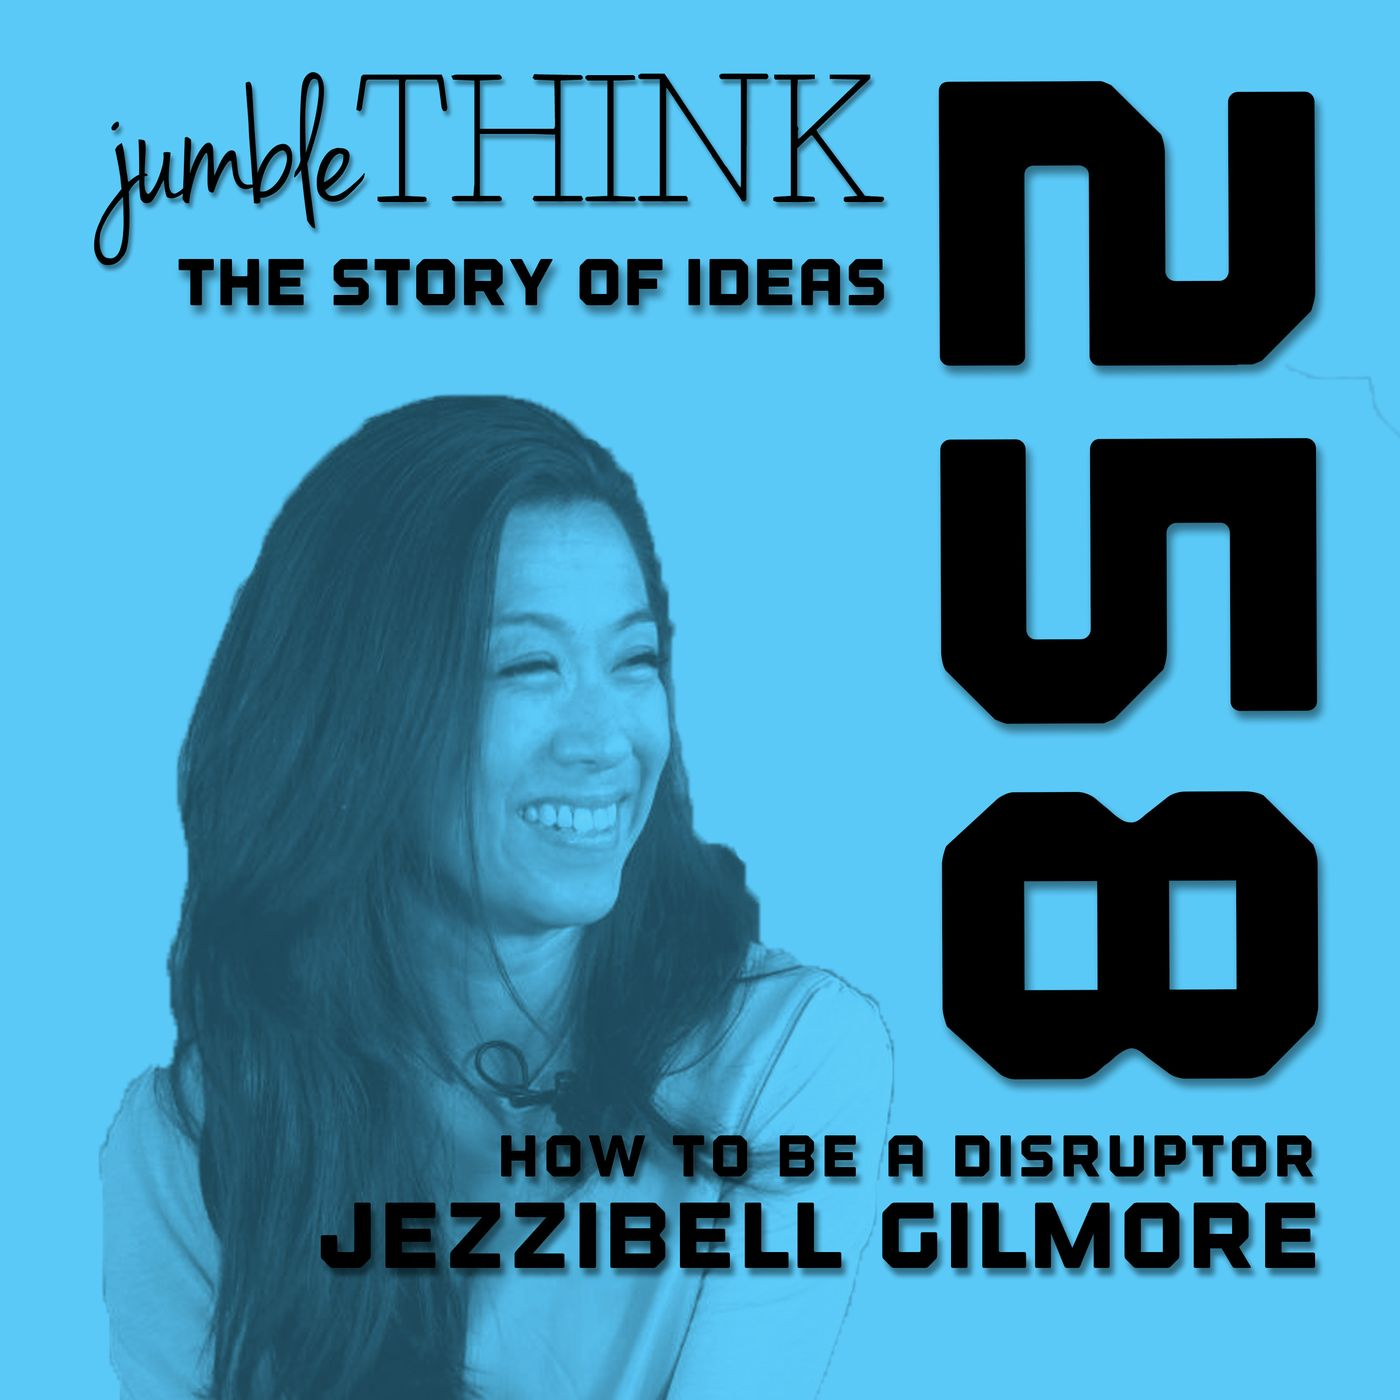 How to be a disruptor with Jezzibell Gilmore